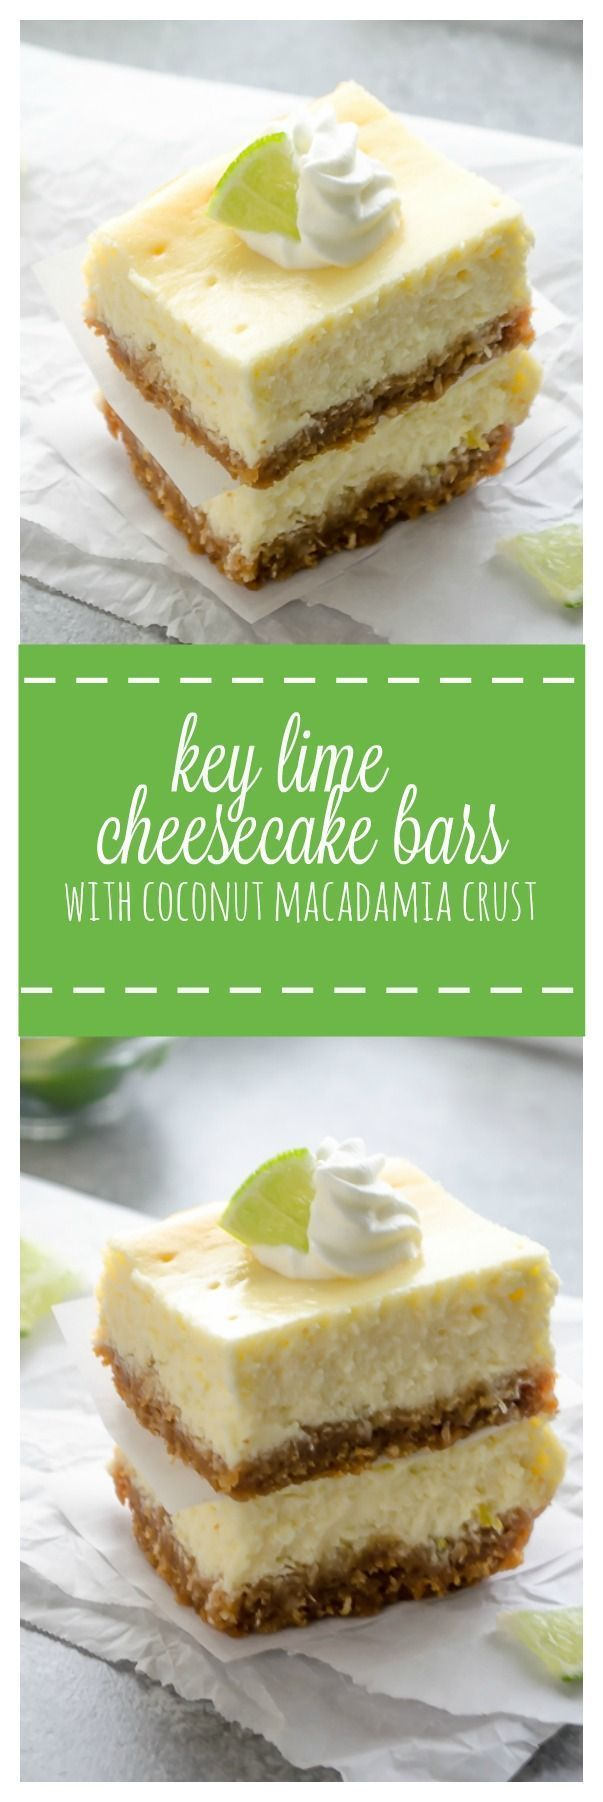 Key Lime Cheesecake Bars with Coconut Macadamia Crust are so easy to make, ultra creamy, and bursting with fresh key lime flavor! /FlavortheMoment/